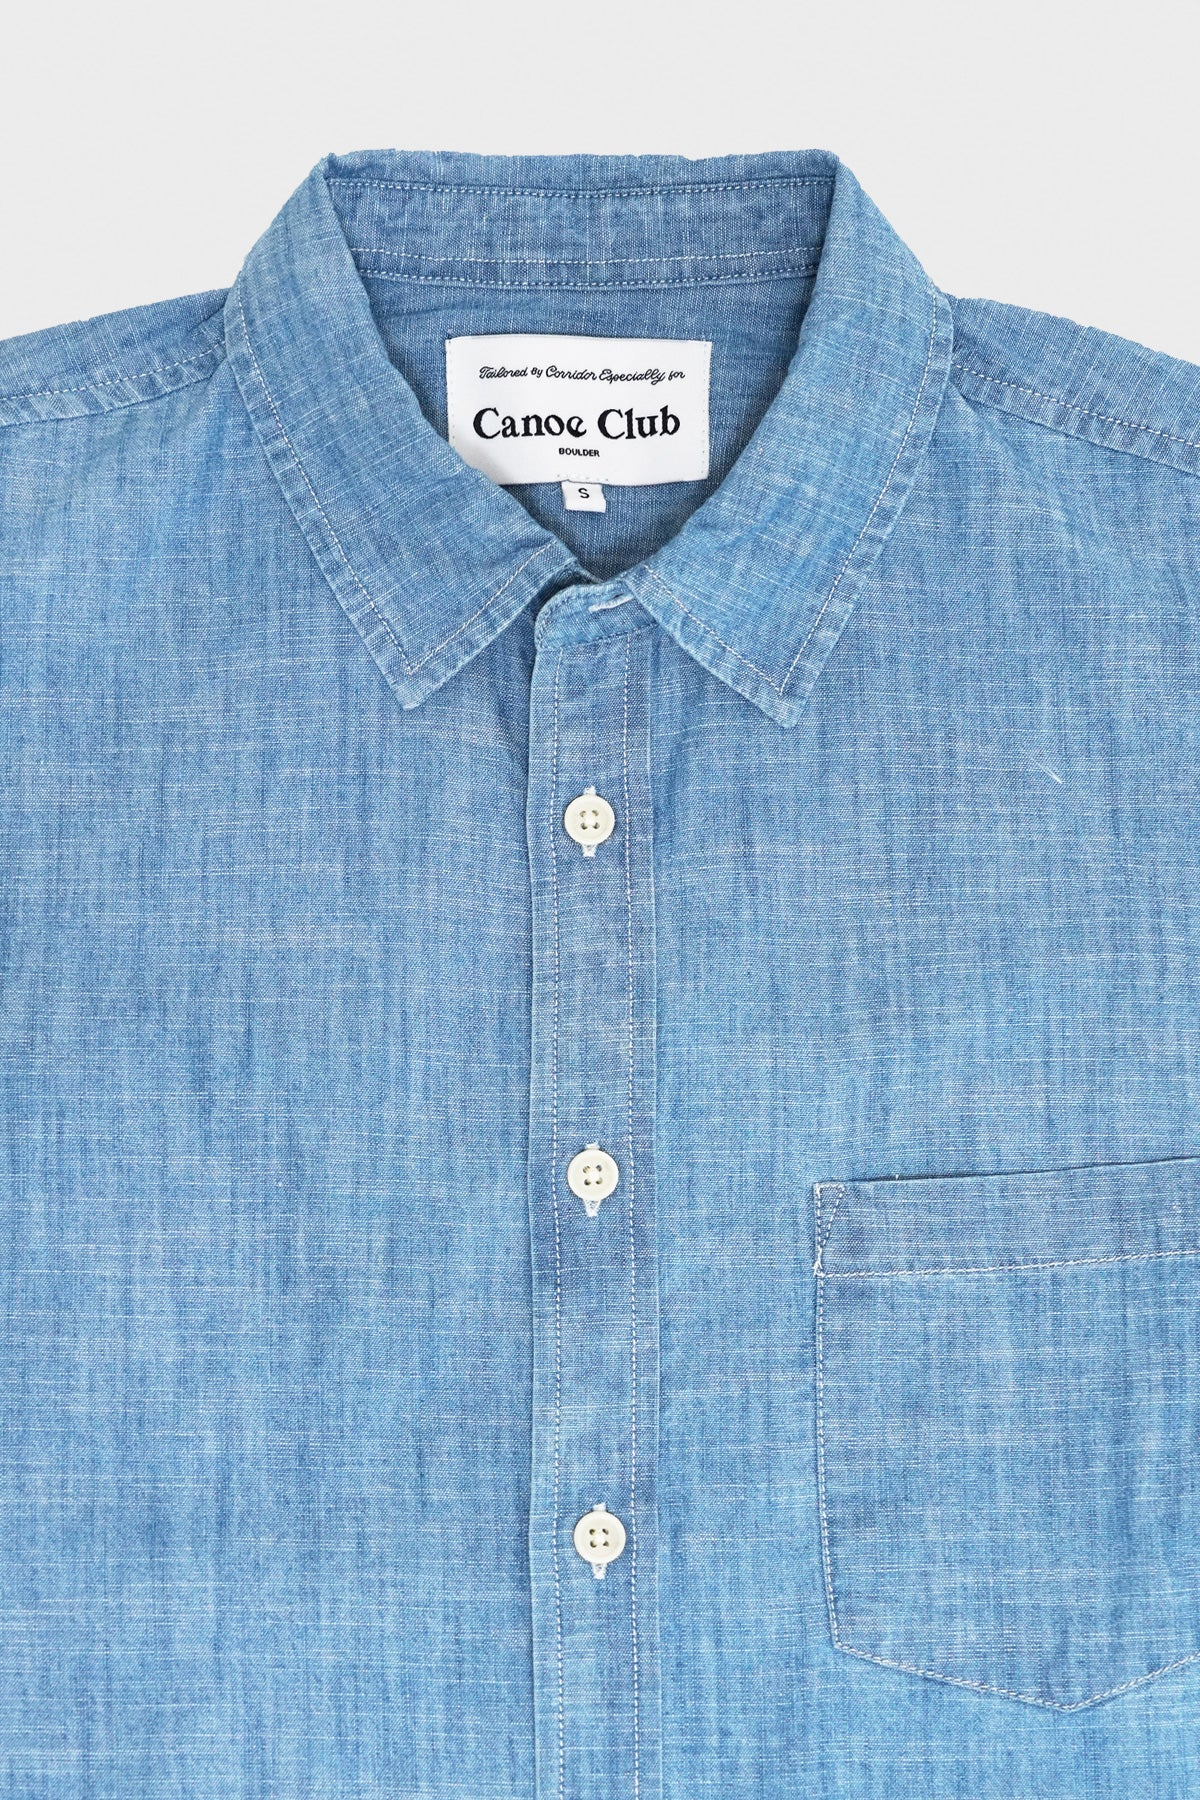 Corridor - Canoe Club Chambray - Blue - Canoe Club